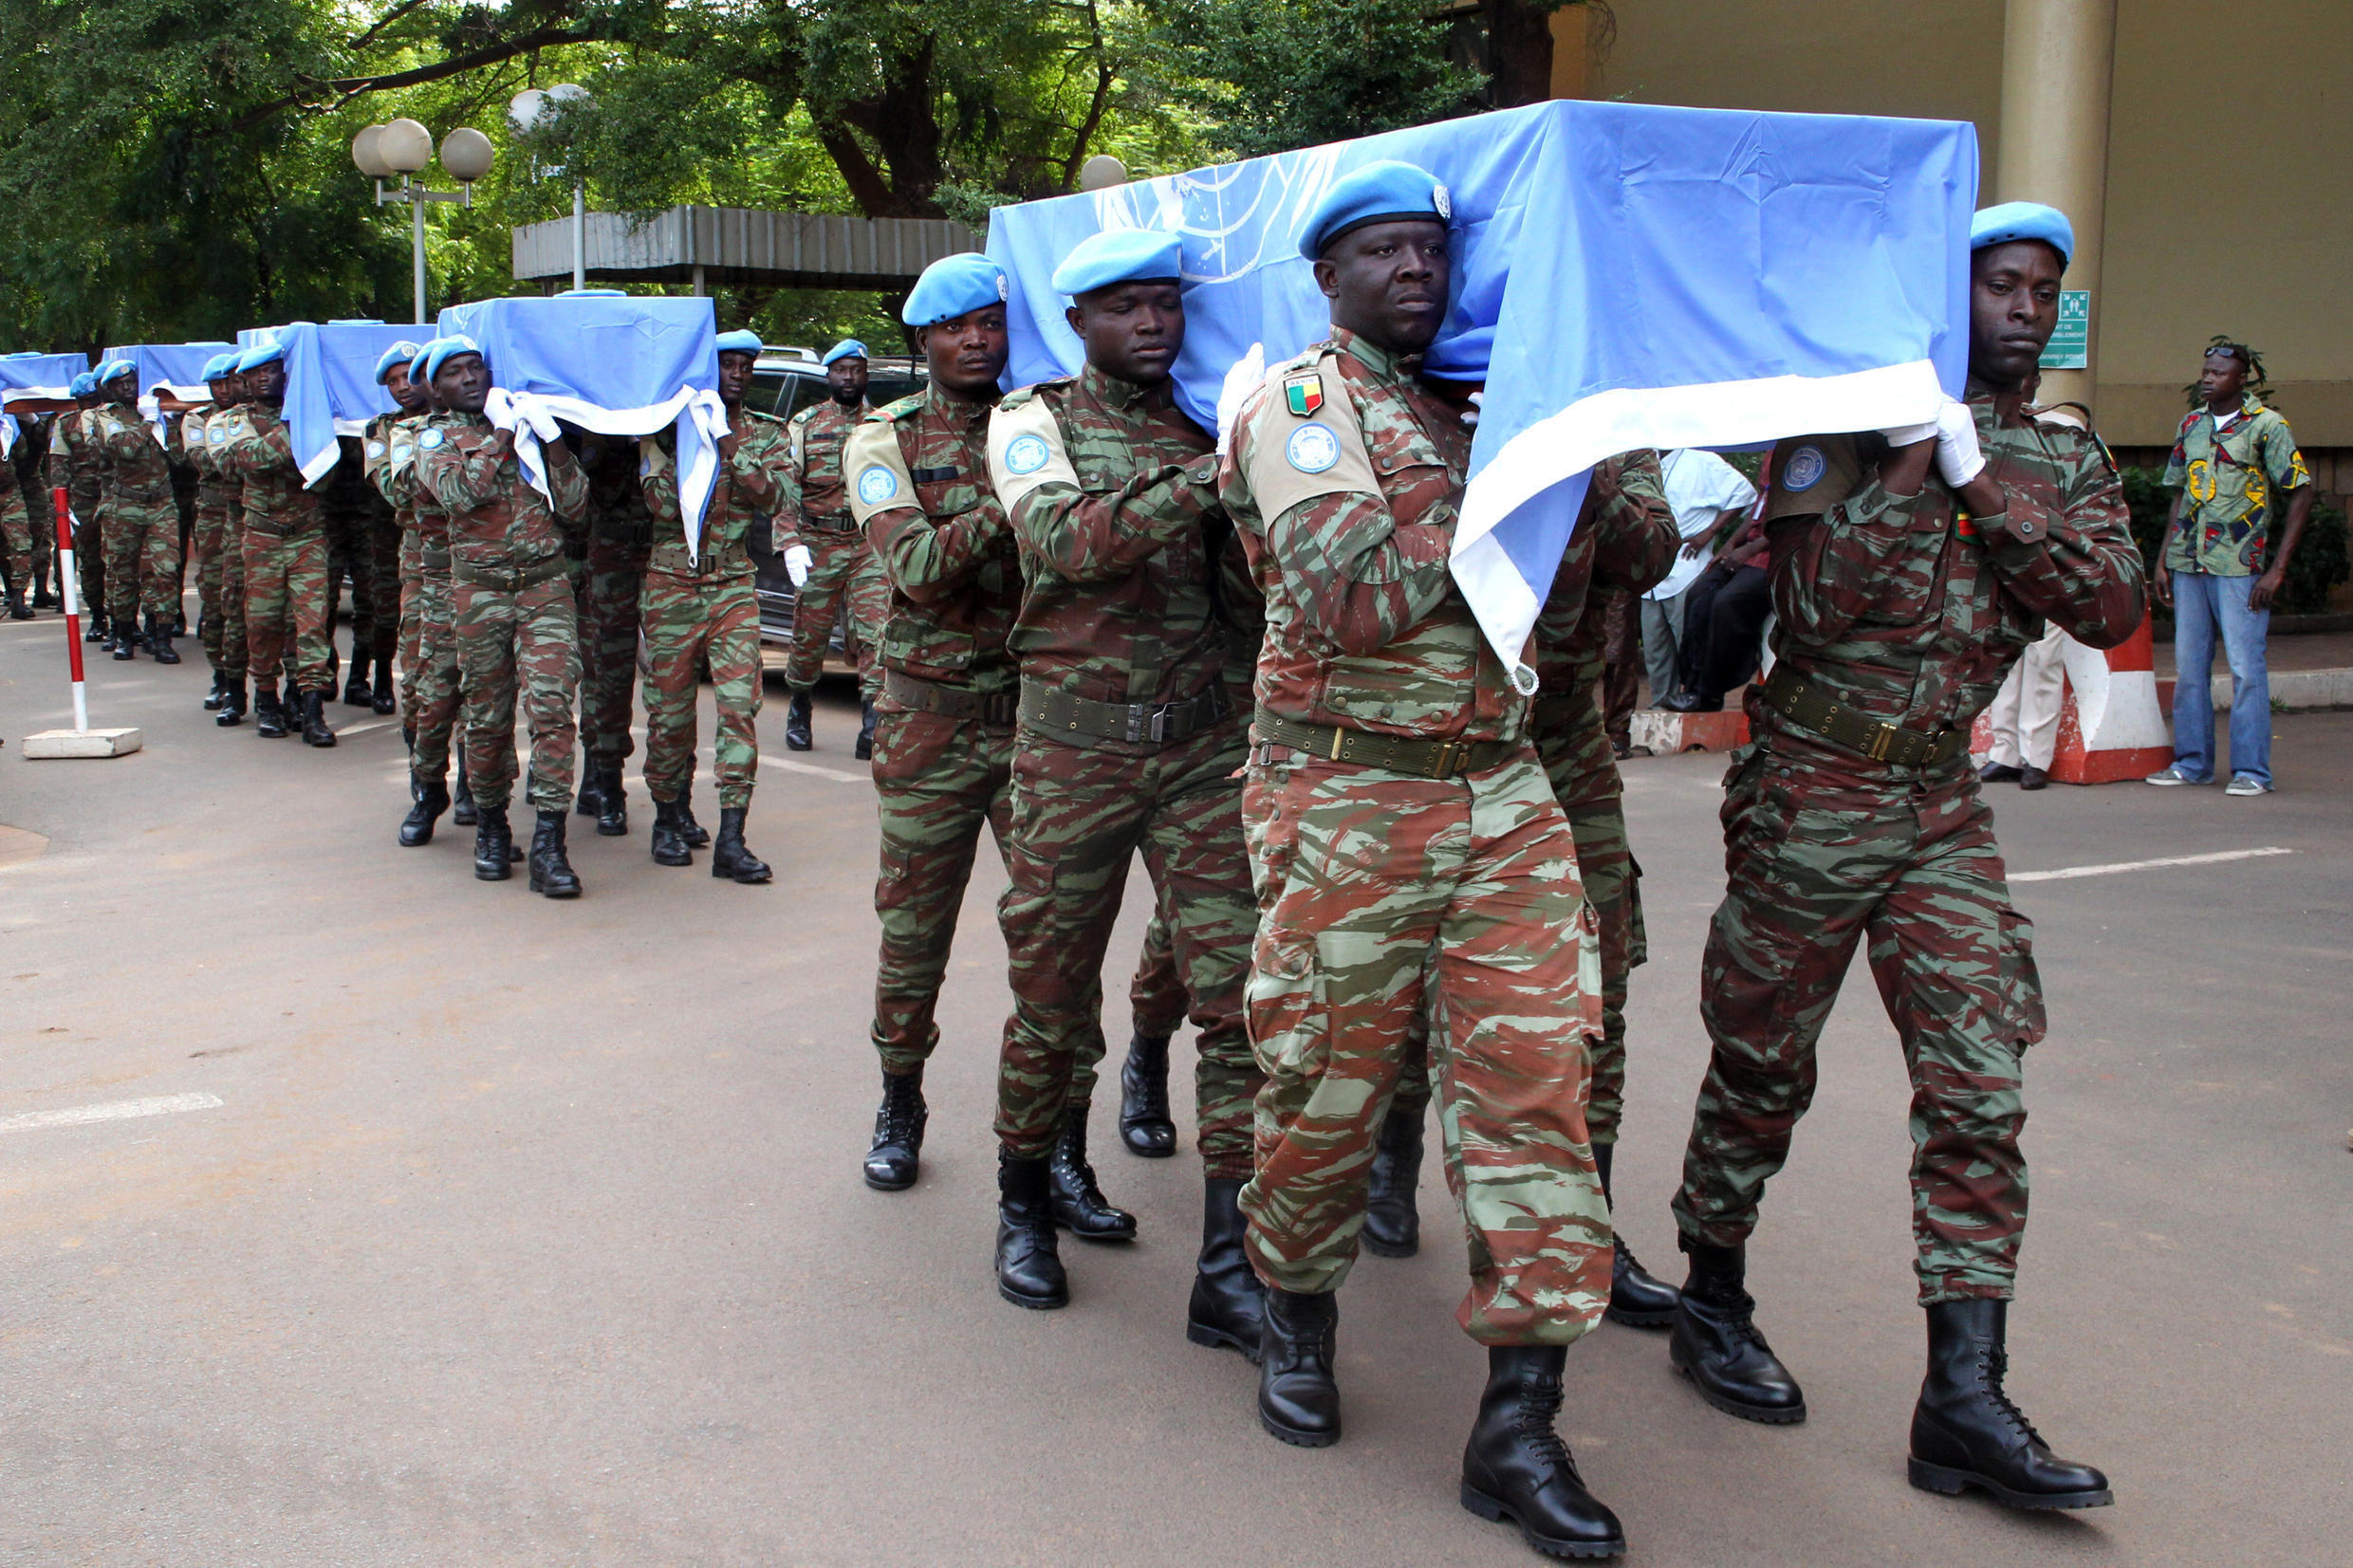 The funeral of nine Minusma troops killed in northern Mali earlier this month in Bamako